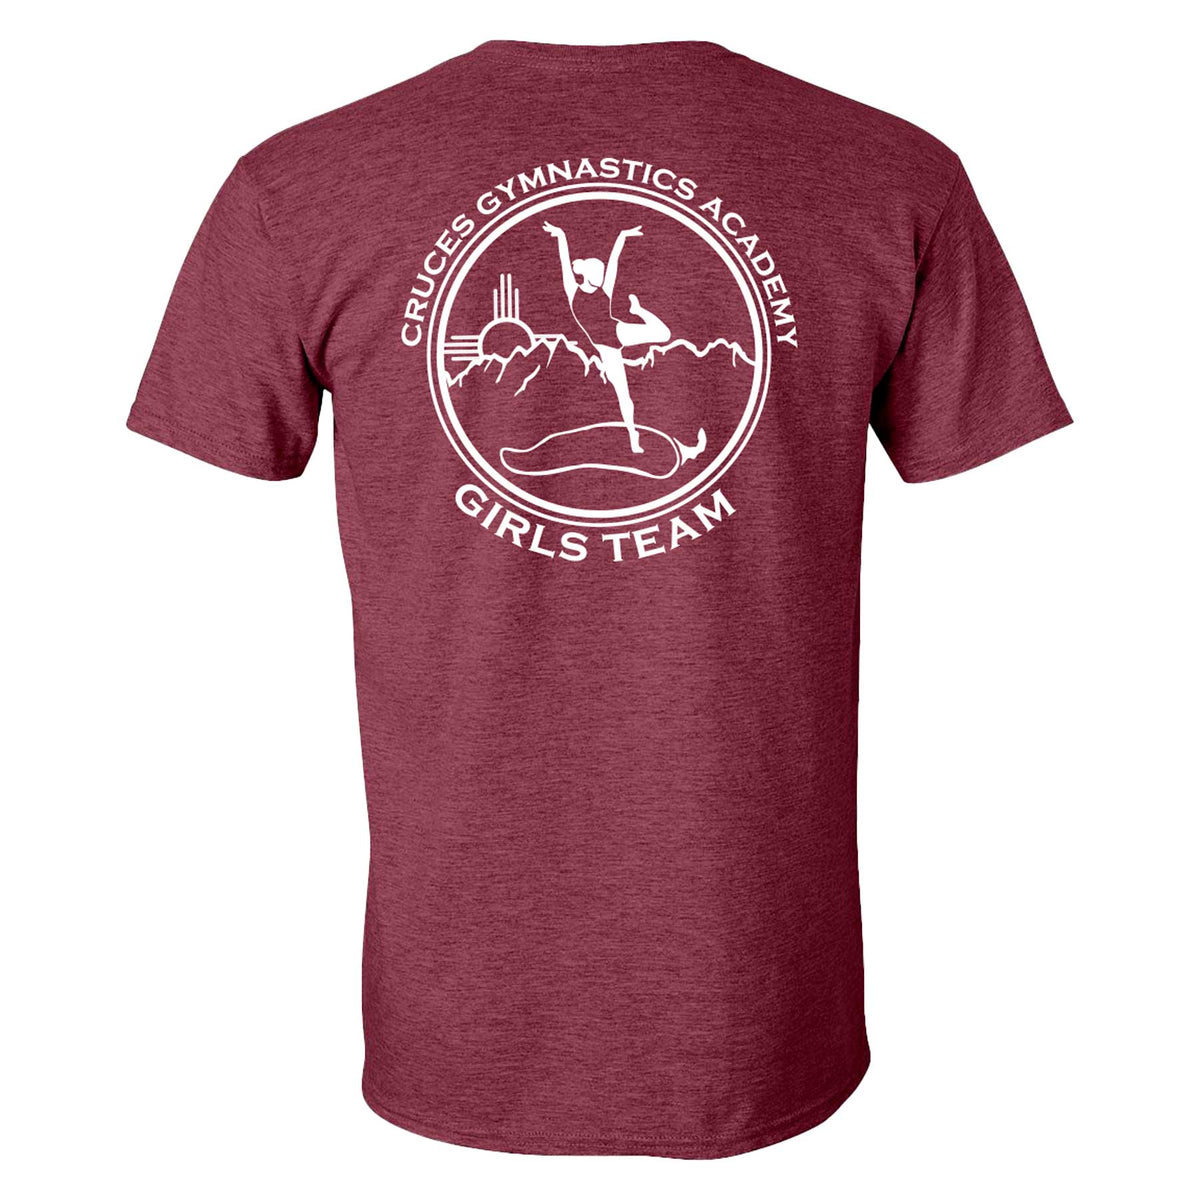 CGA Girls Team T-Shirt